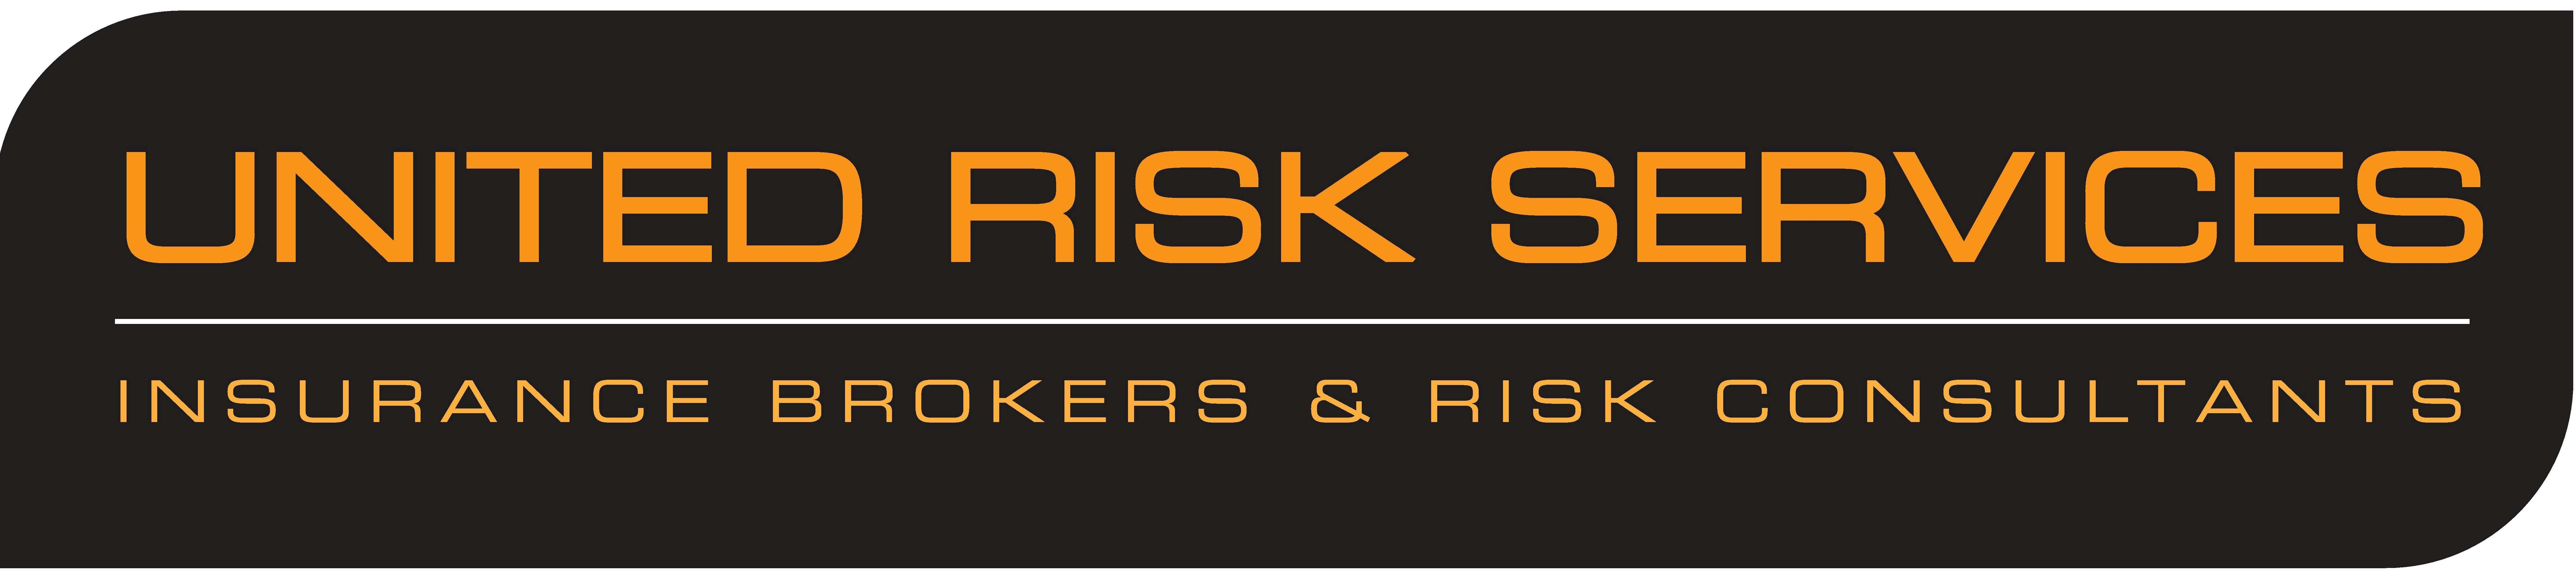 united risk services - high resolution.jpg